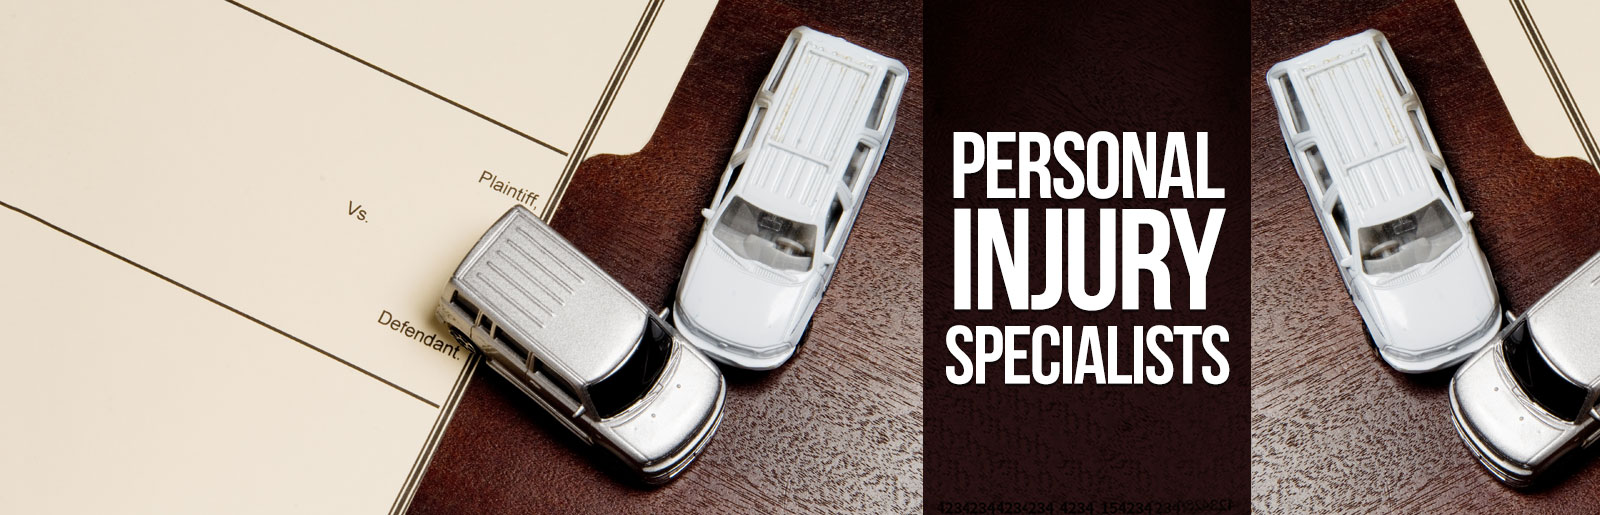 Personal-Injury-Specialist-Joesph-Mc-Nally---Slider-NEW